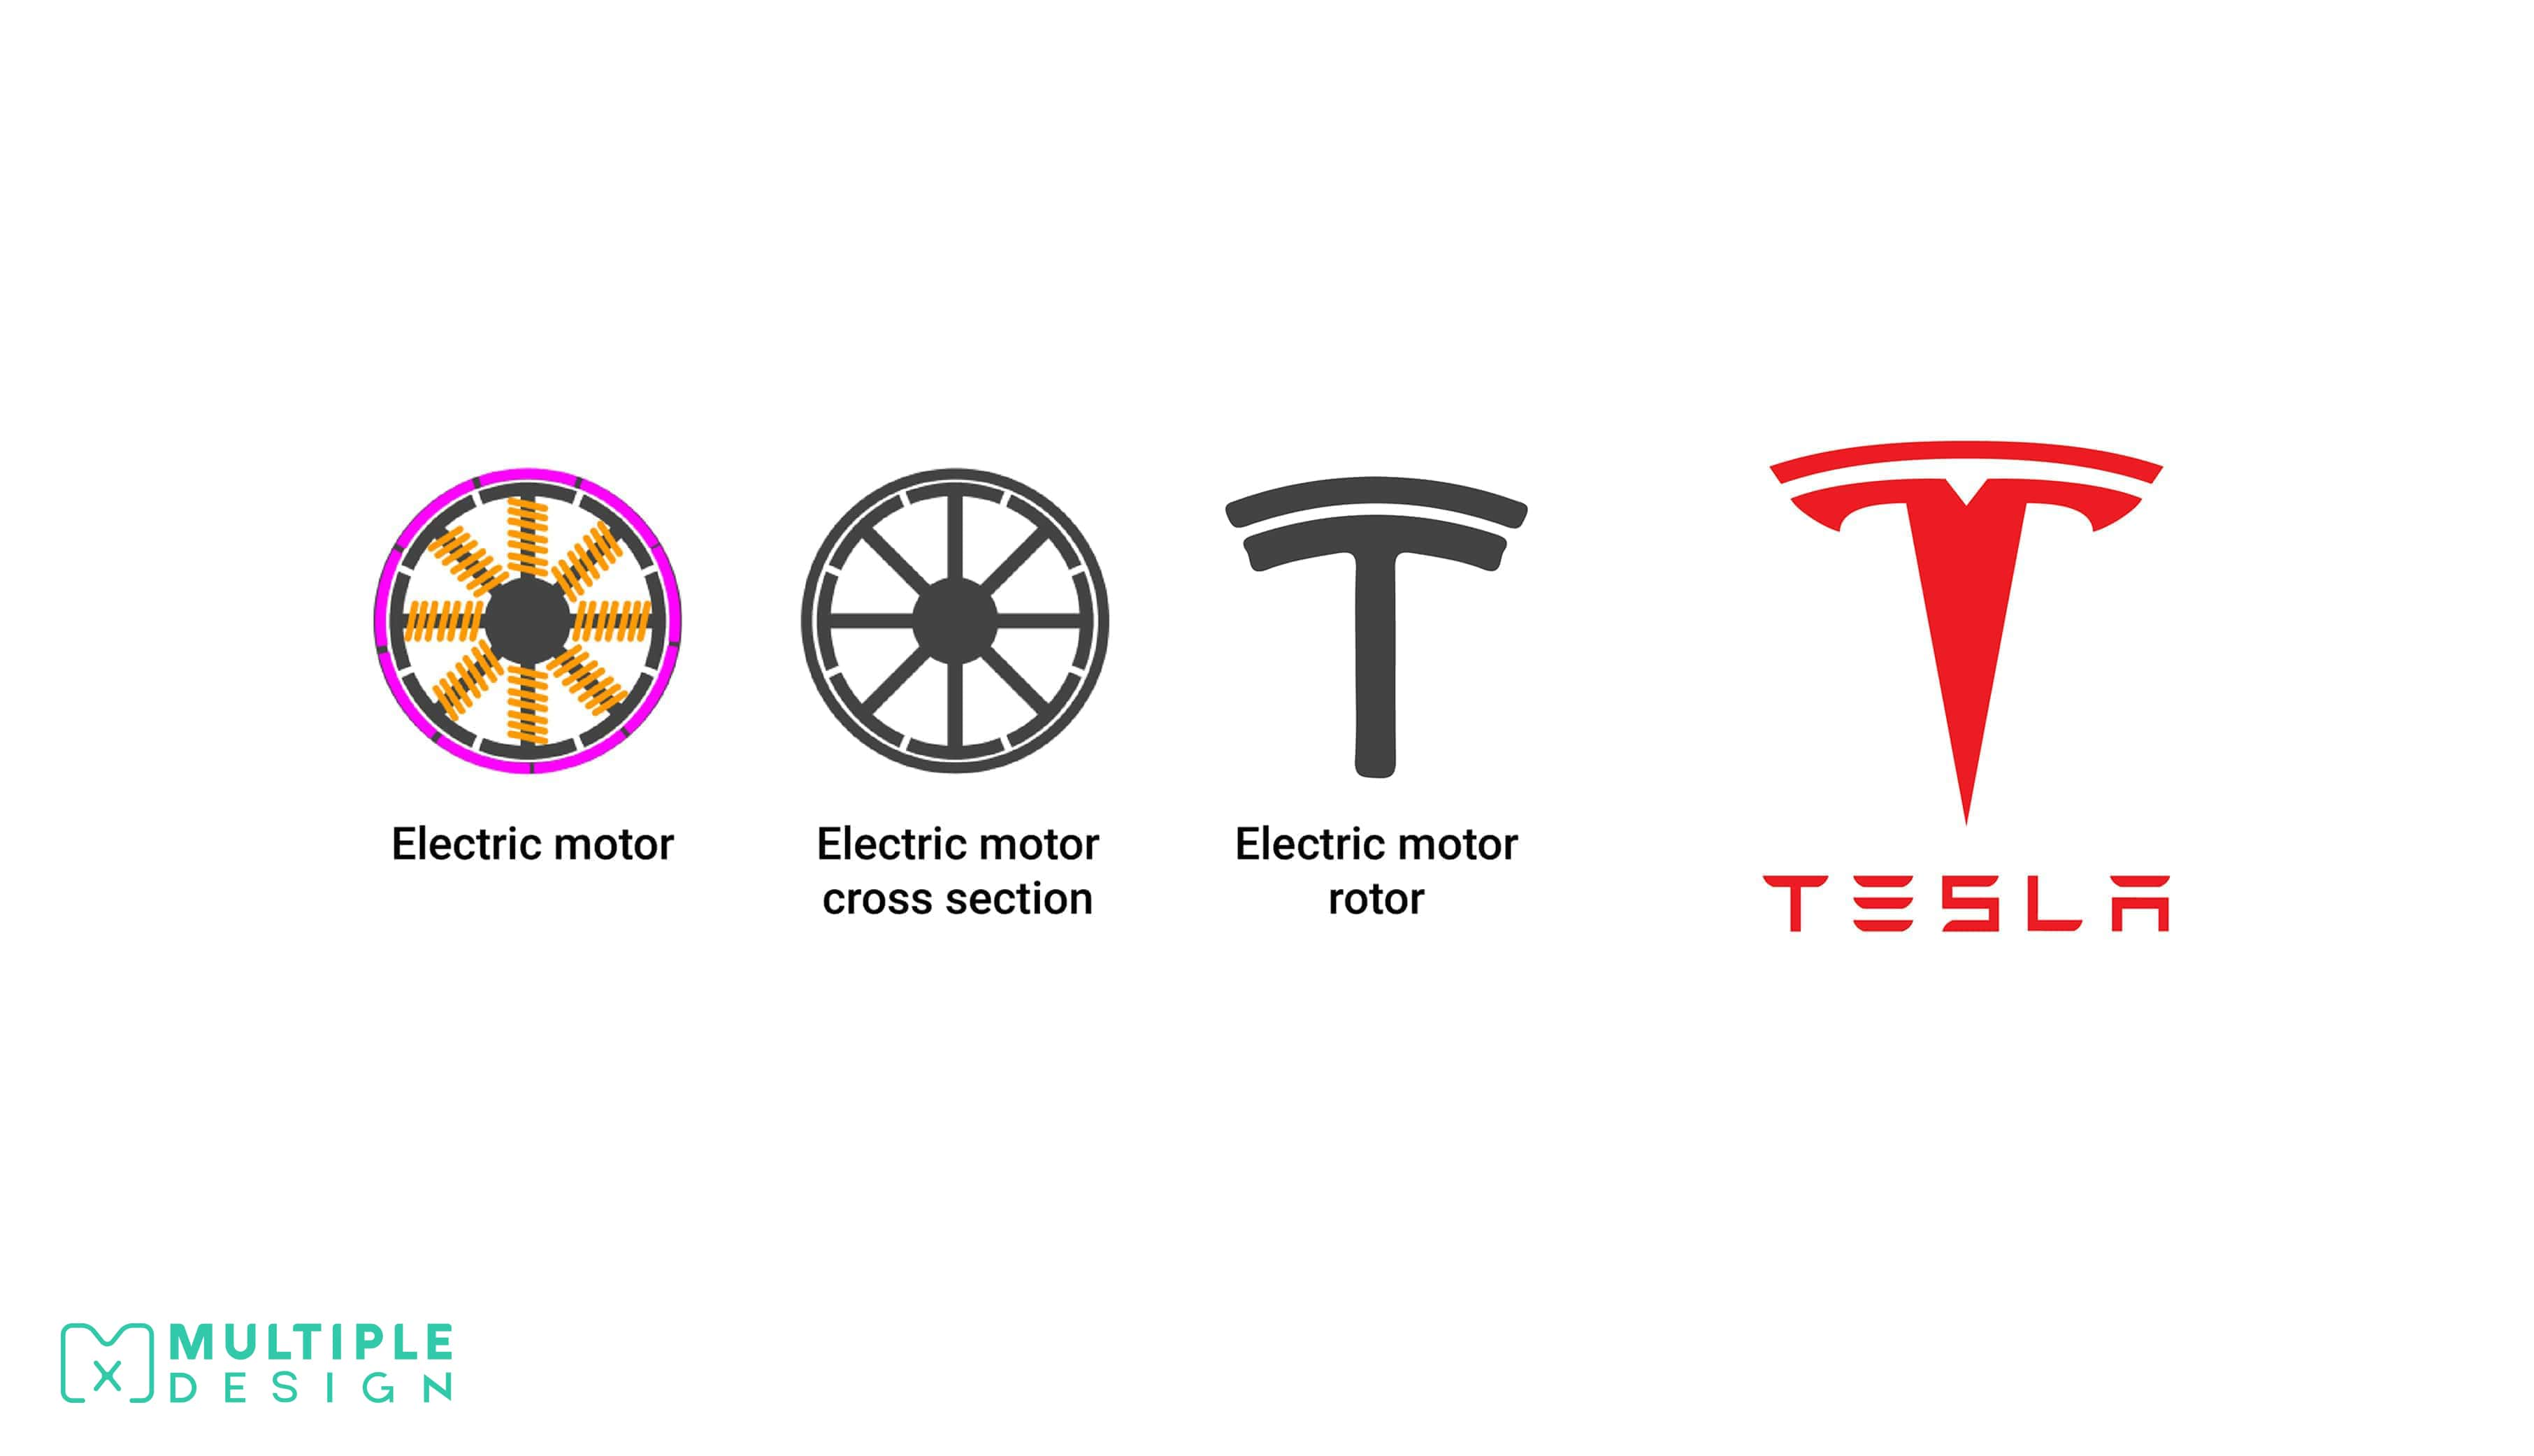 tesla logo, electric motor cross section